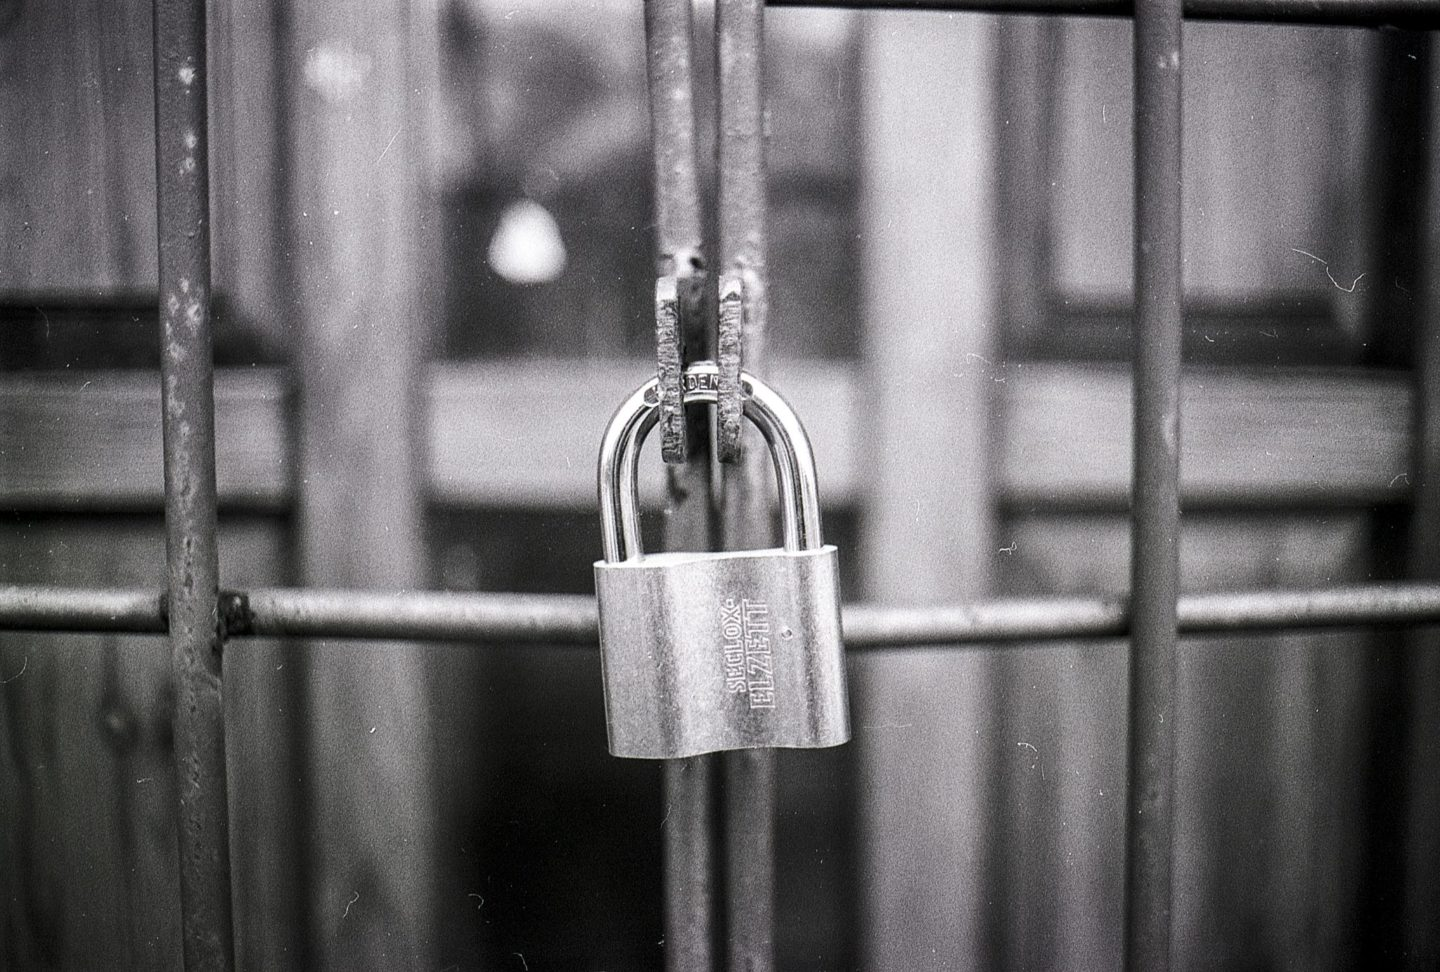 padlock for data security - GDPR compliance